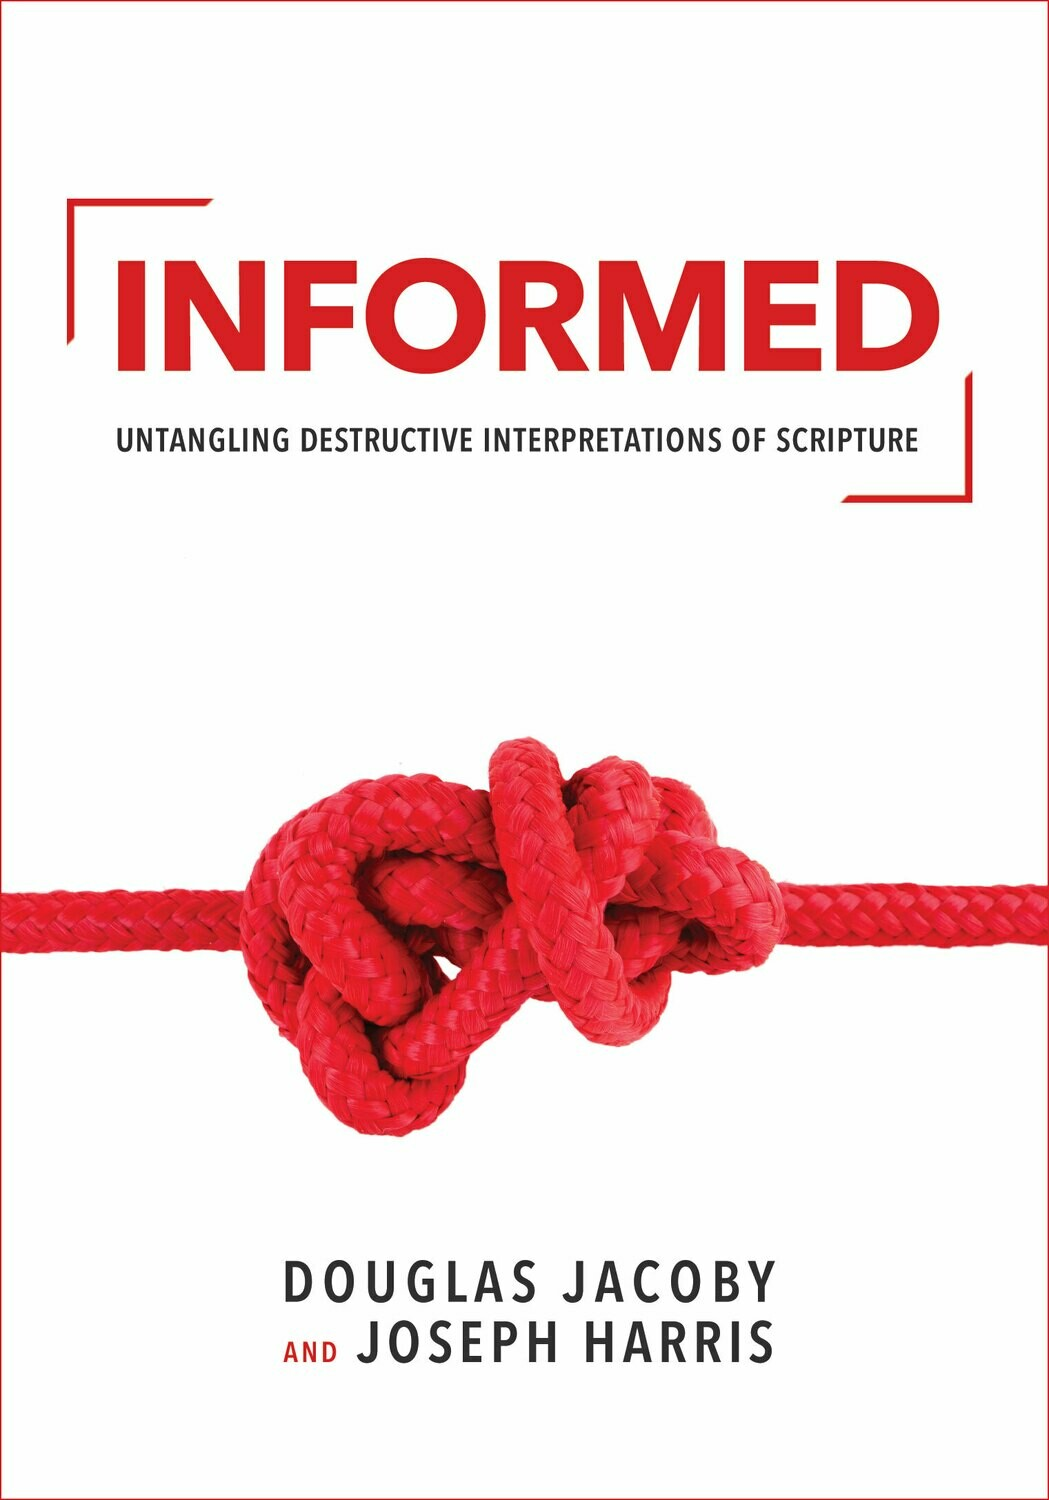 Informed—Untangling Destructive Interpretations of Scripture